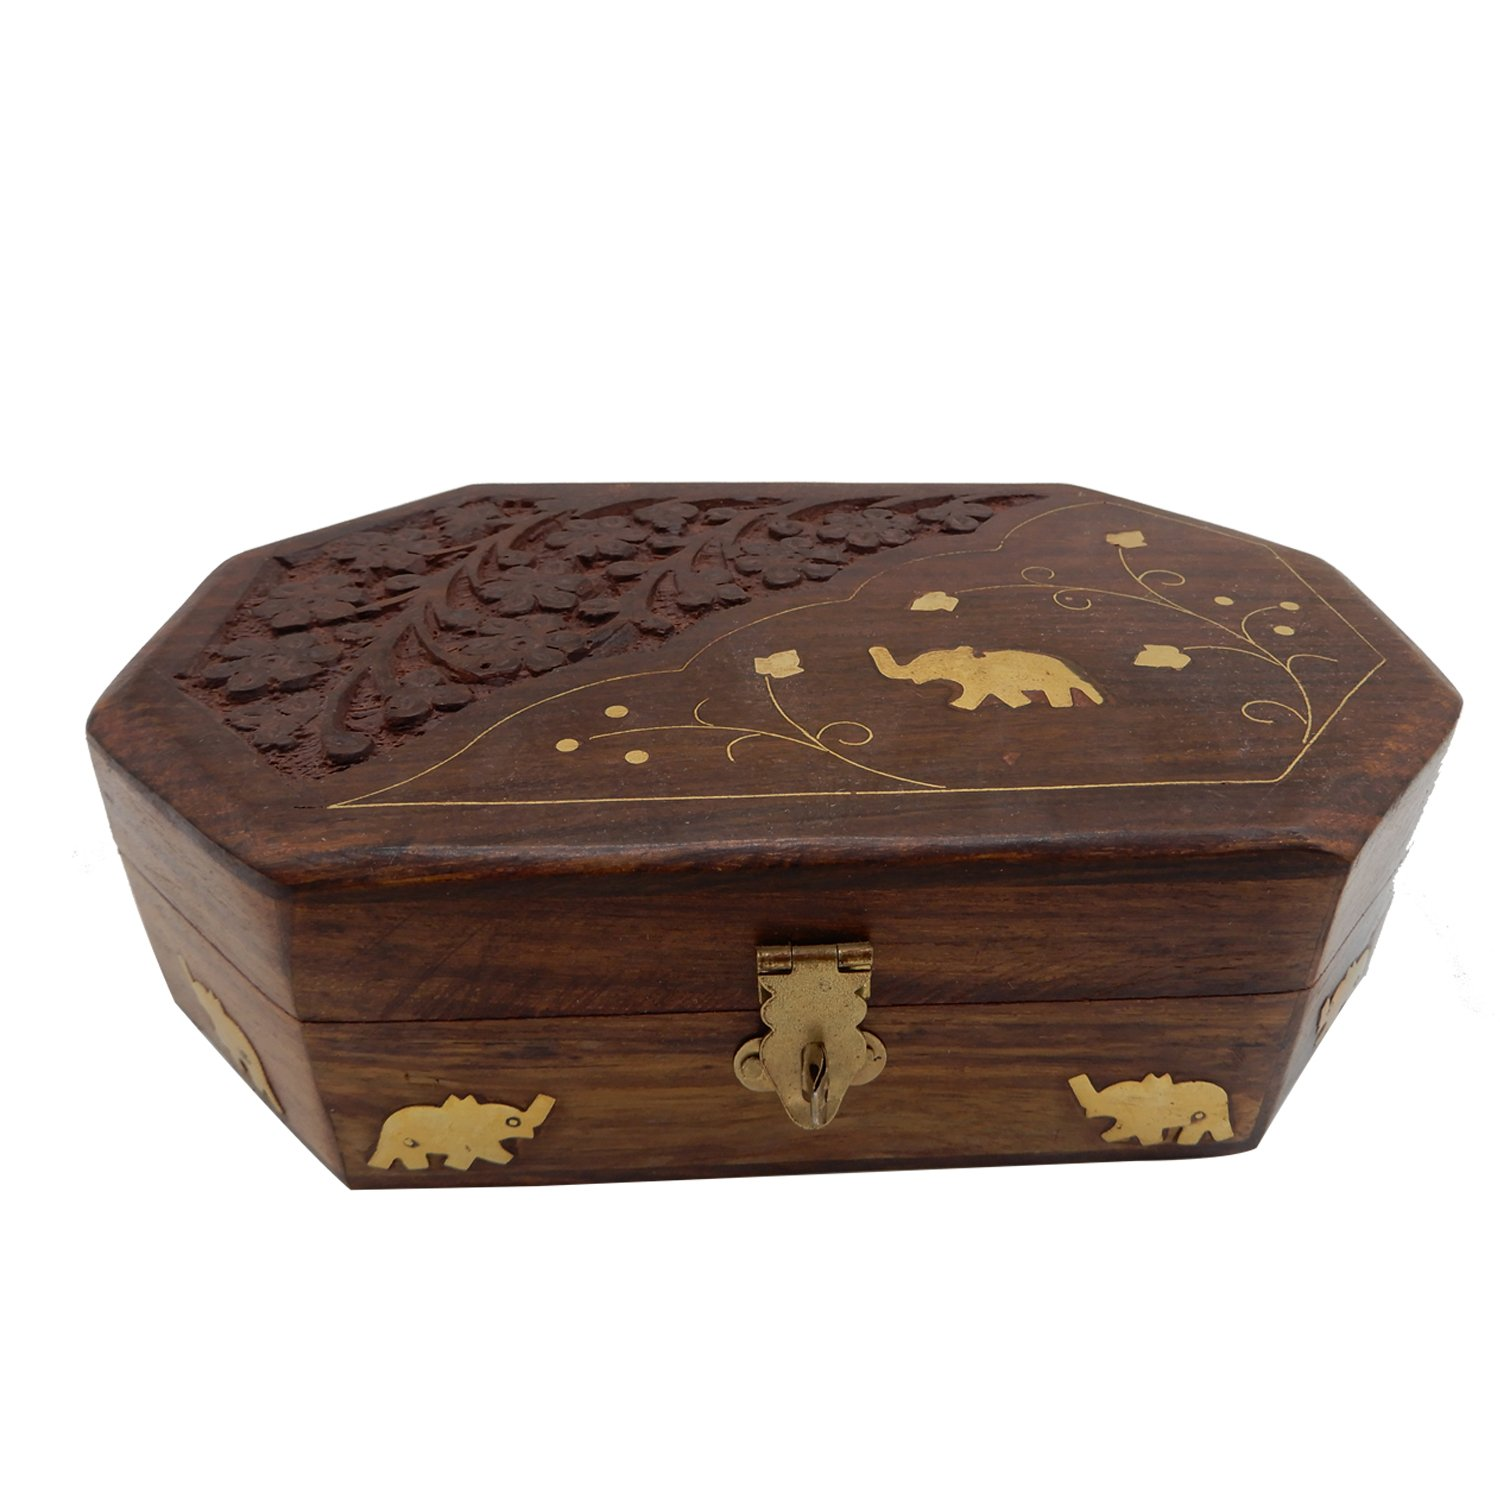 WhopperIndia Handmade Wooden Jewelry Storage Box Keepsake Vintage Jewelry Box with Elephant and Carving Work 7 X 5 Inch